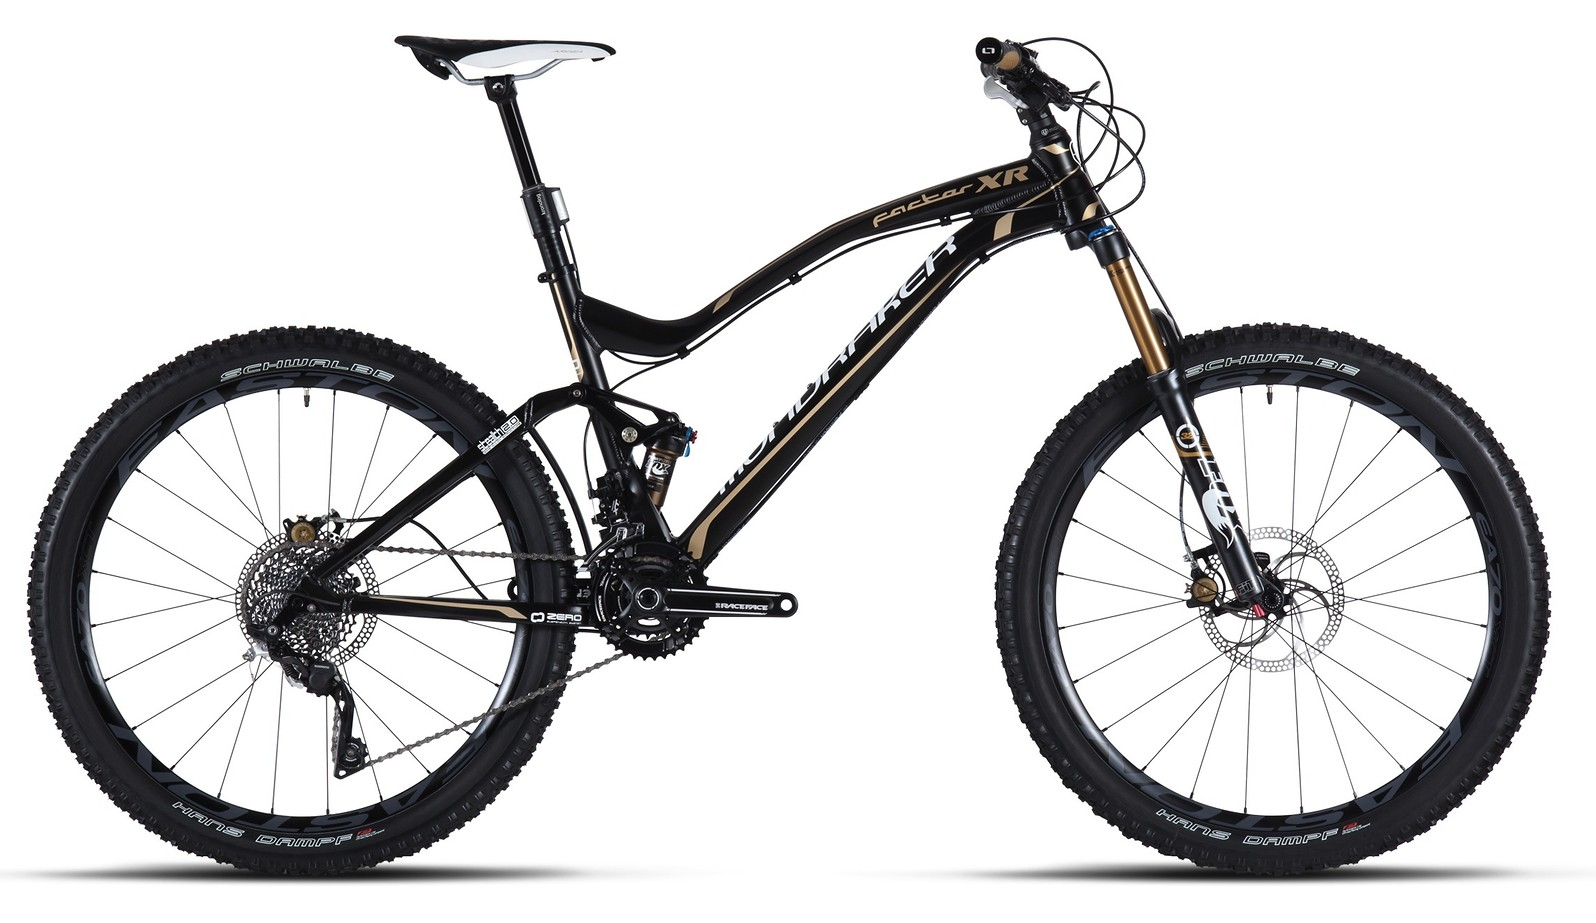 2013 Mondraker Factor XR Bike bike - mondraker factor xr